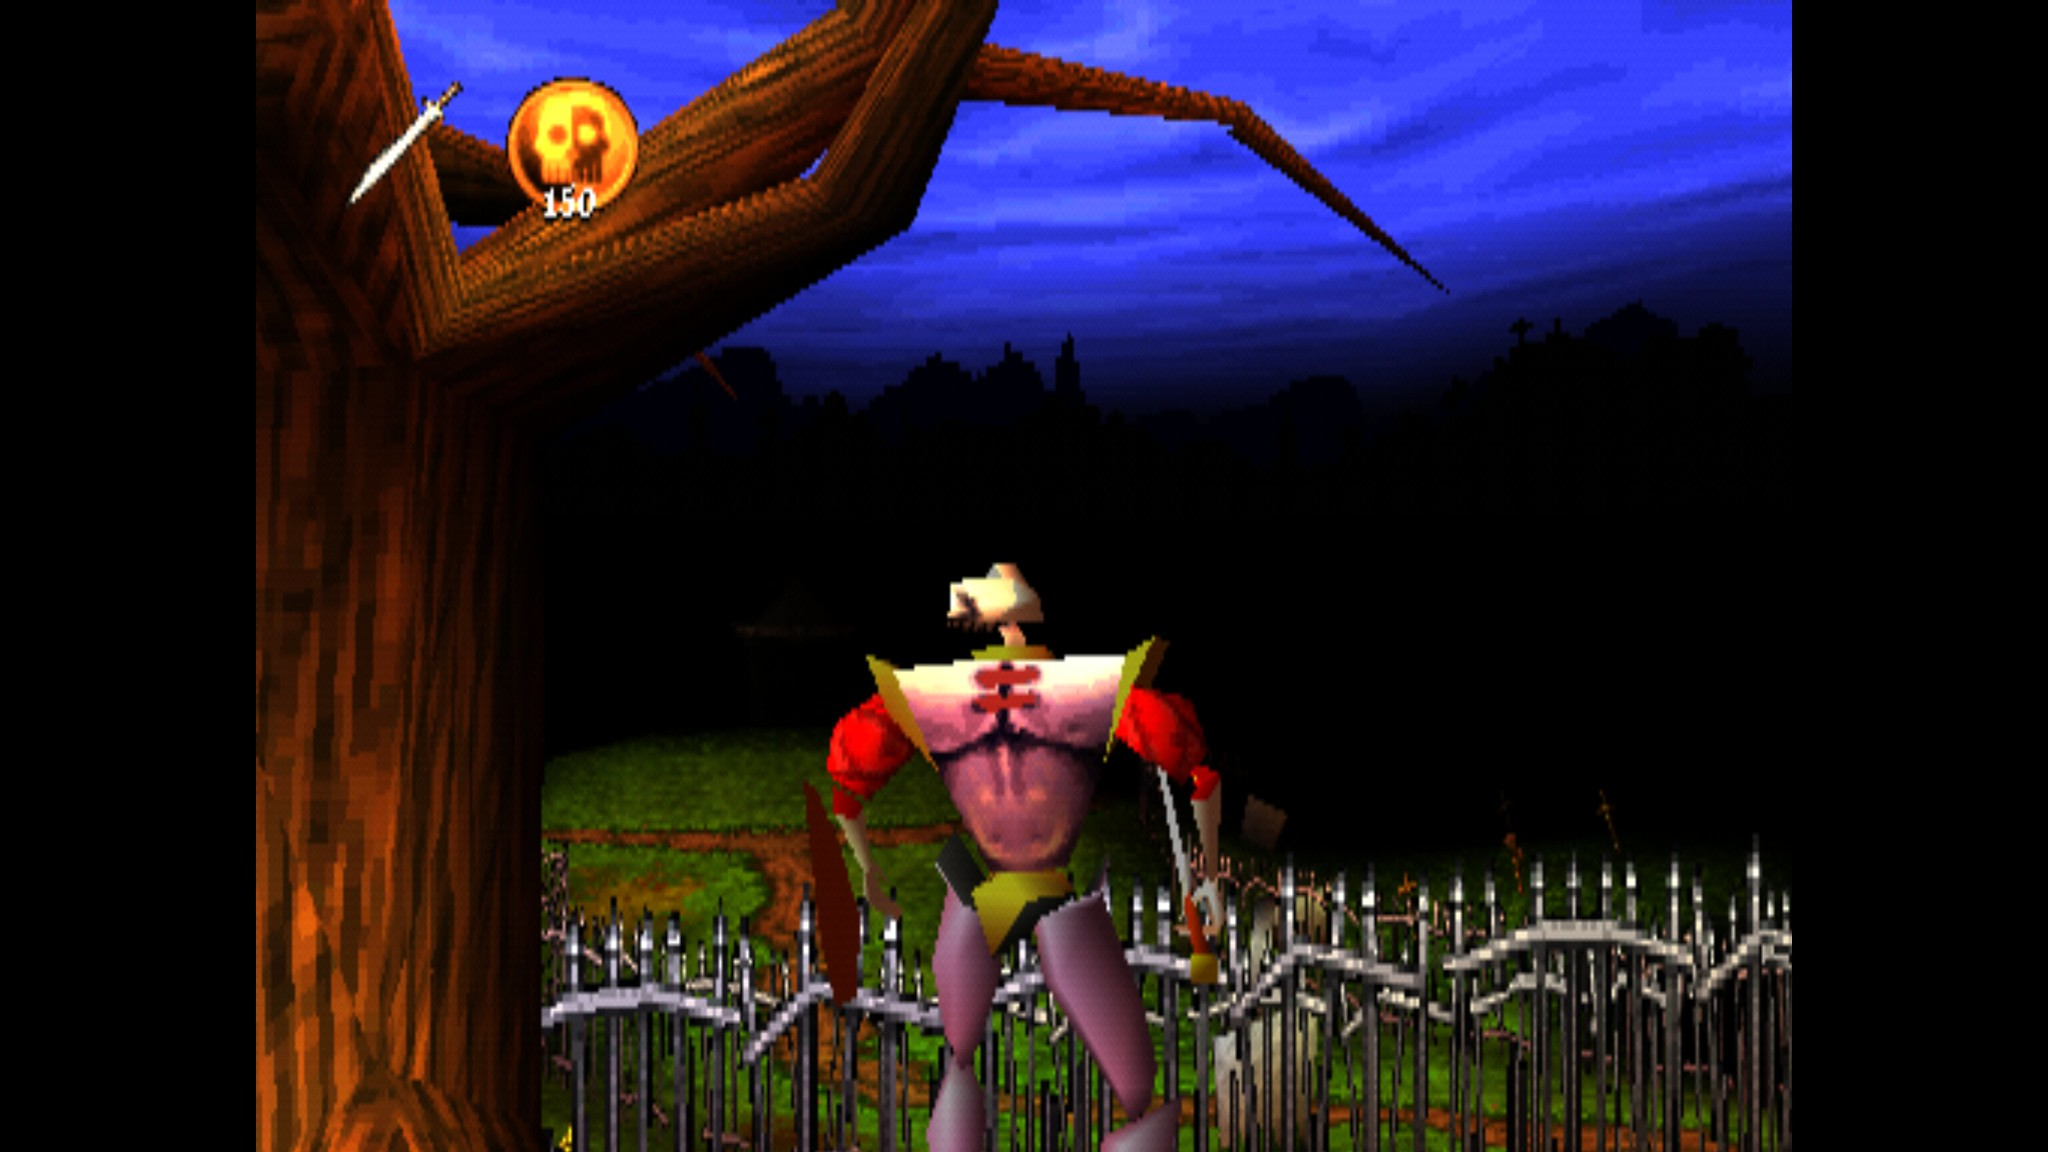 MediEvil: New Hands-on Impressions, PS1 to PS4 Comparison